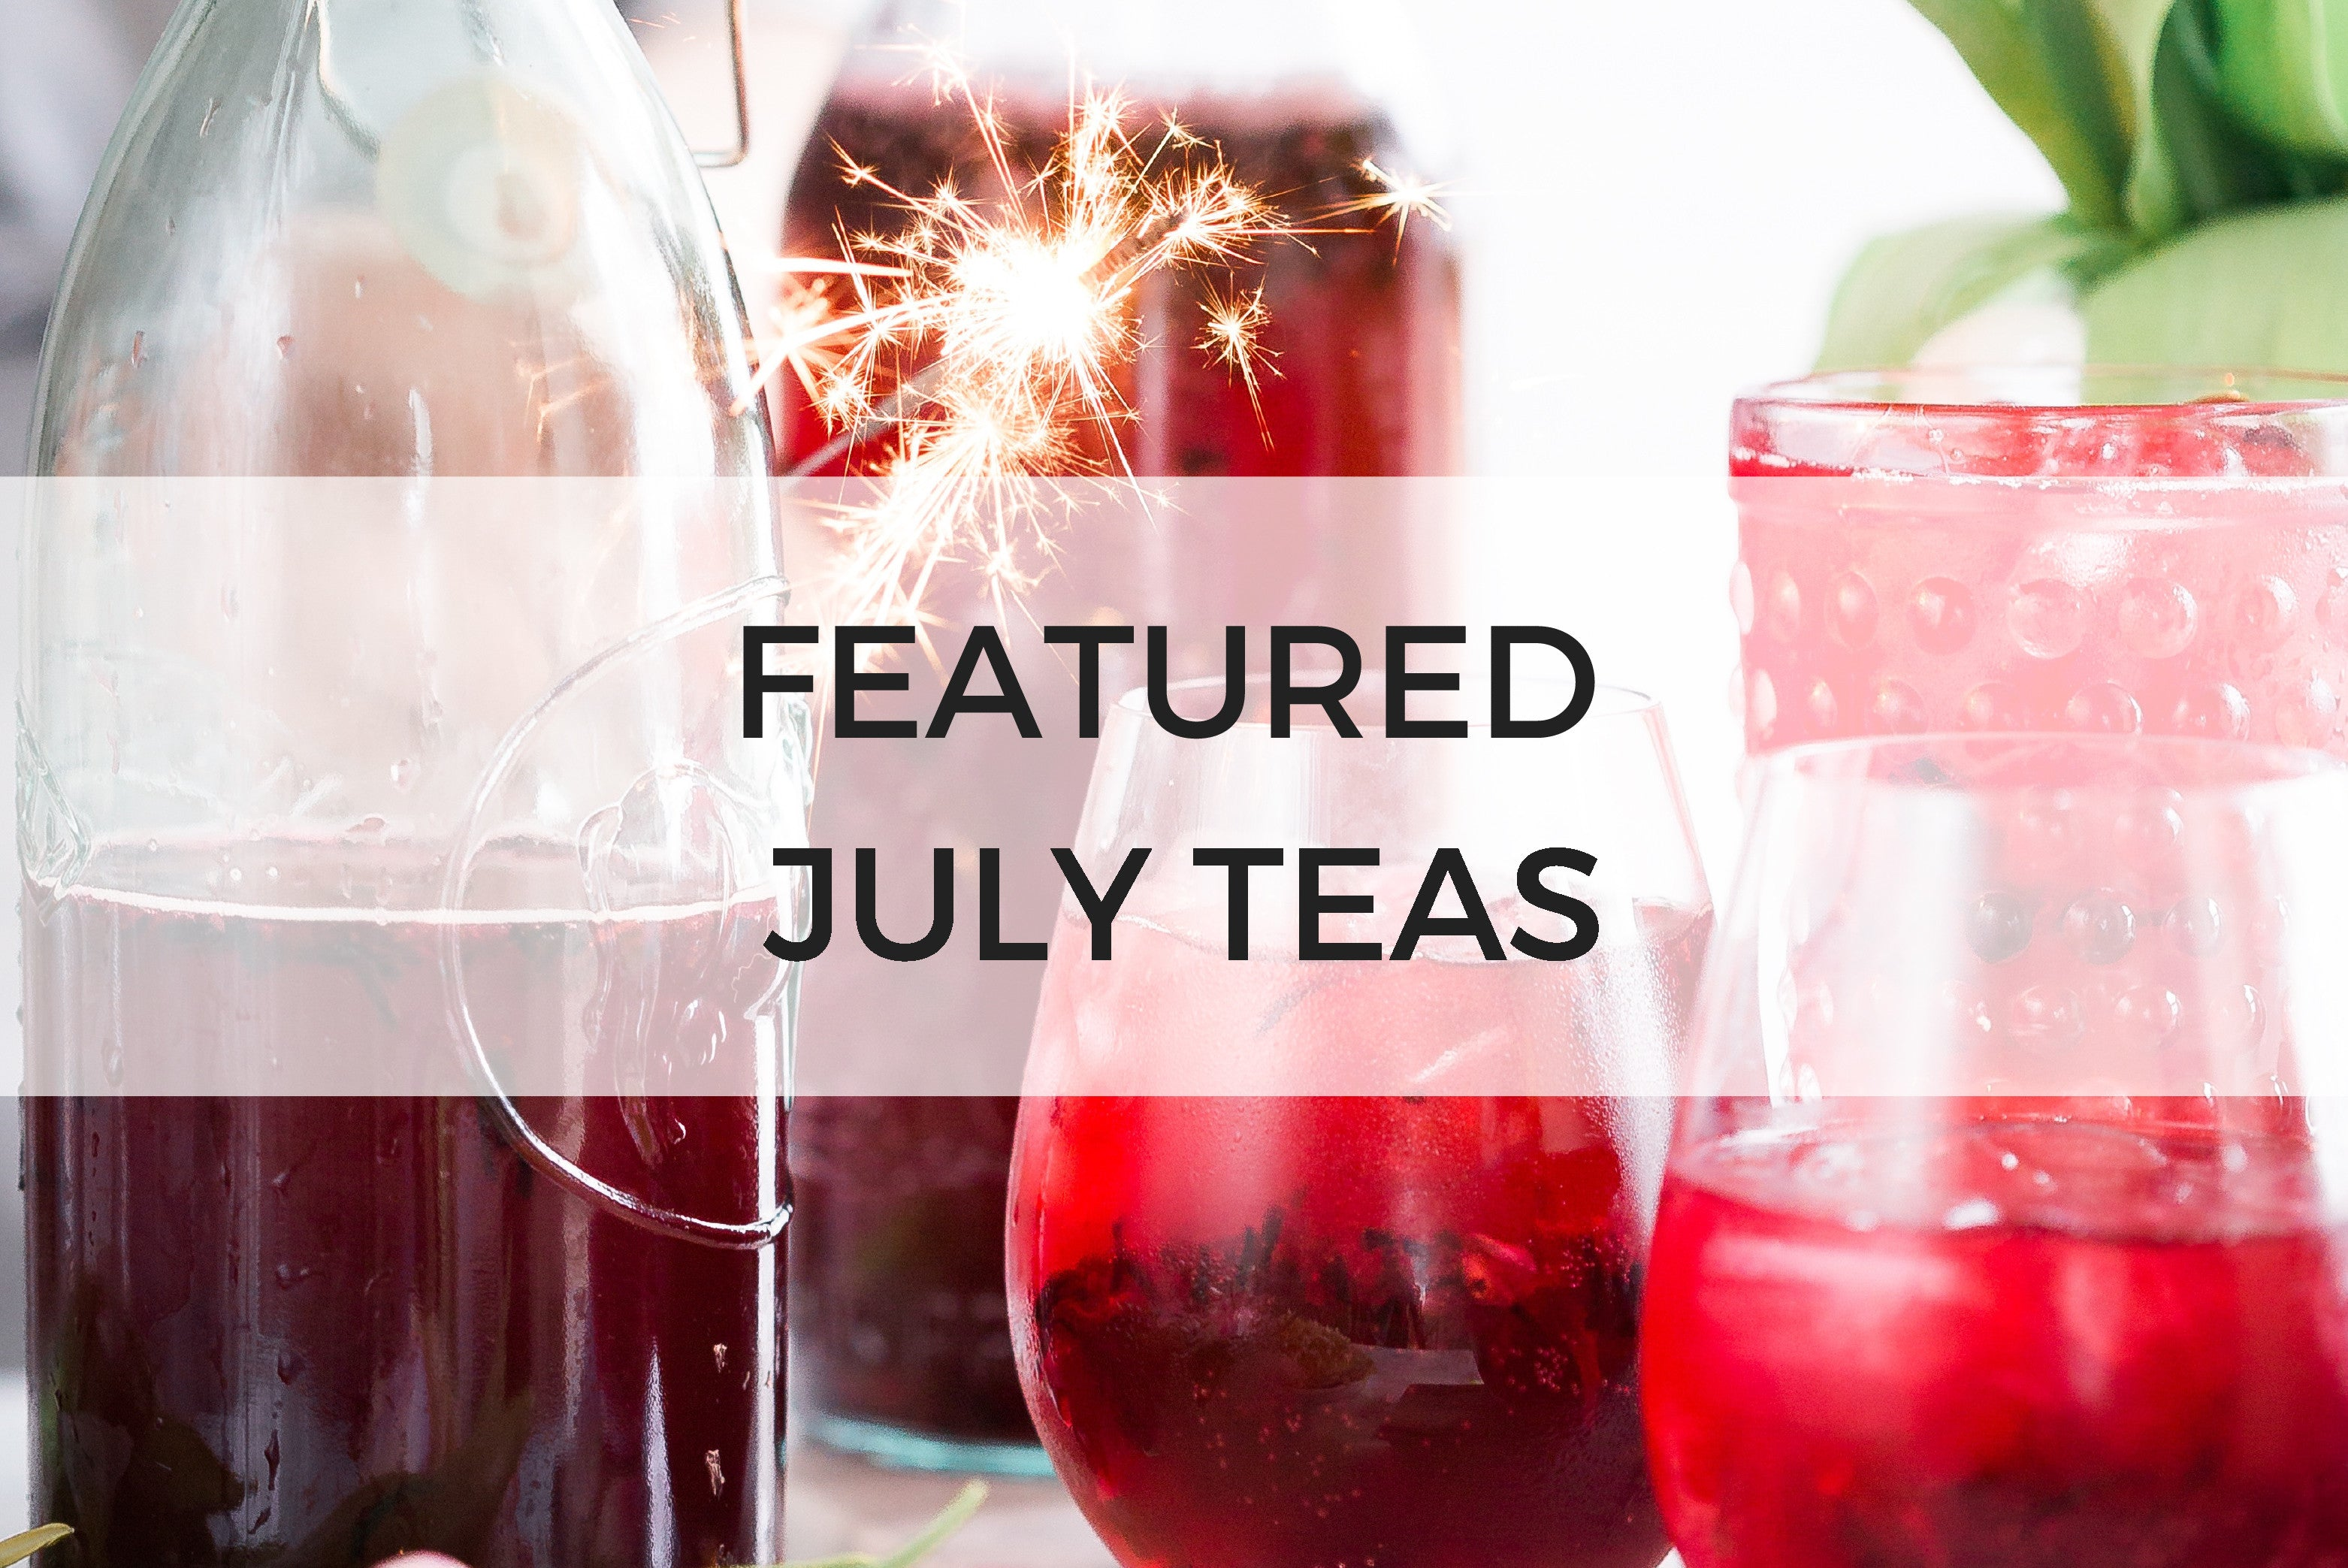 FEATURED JULY TEAS